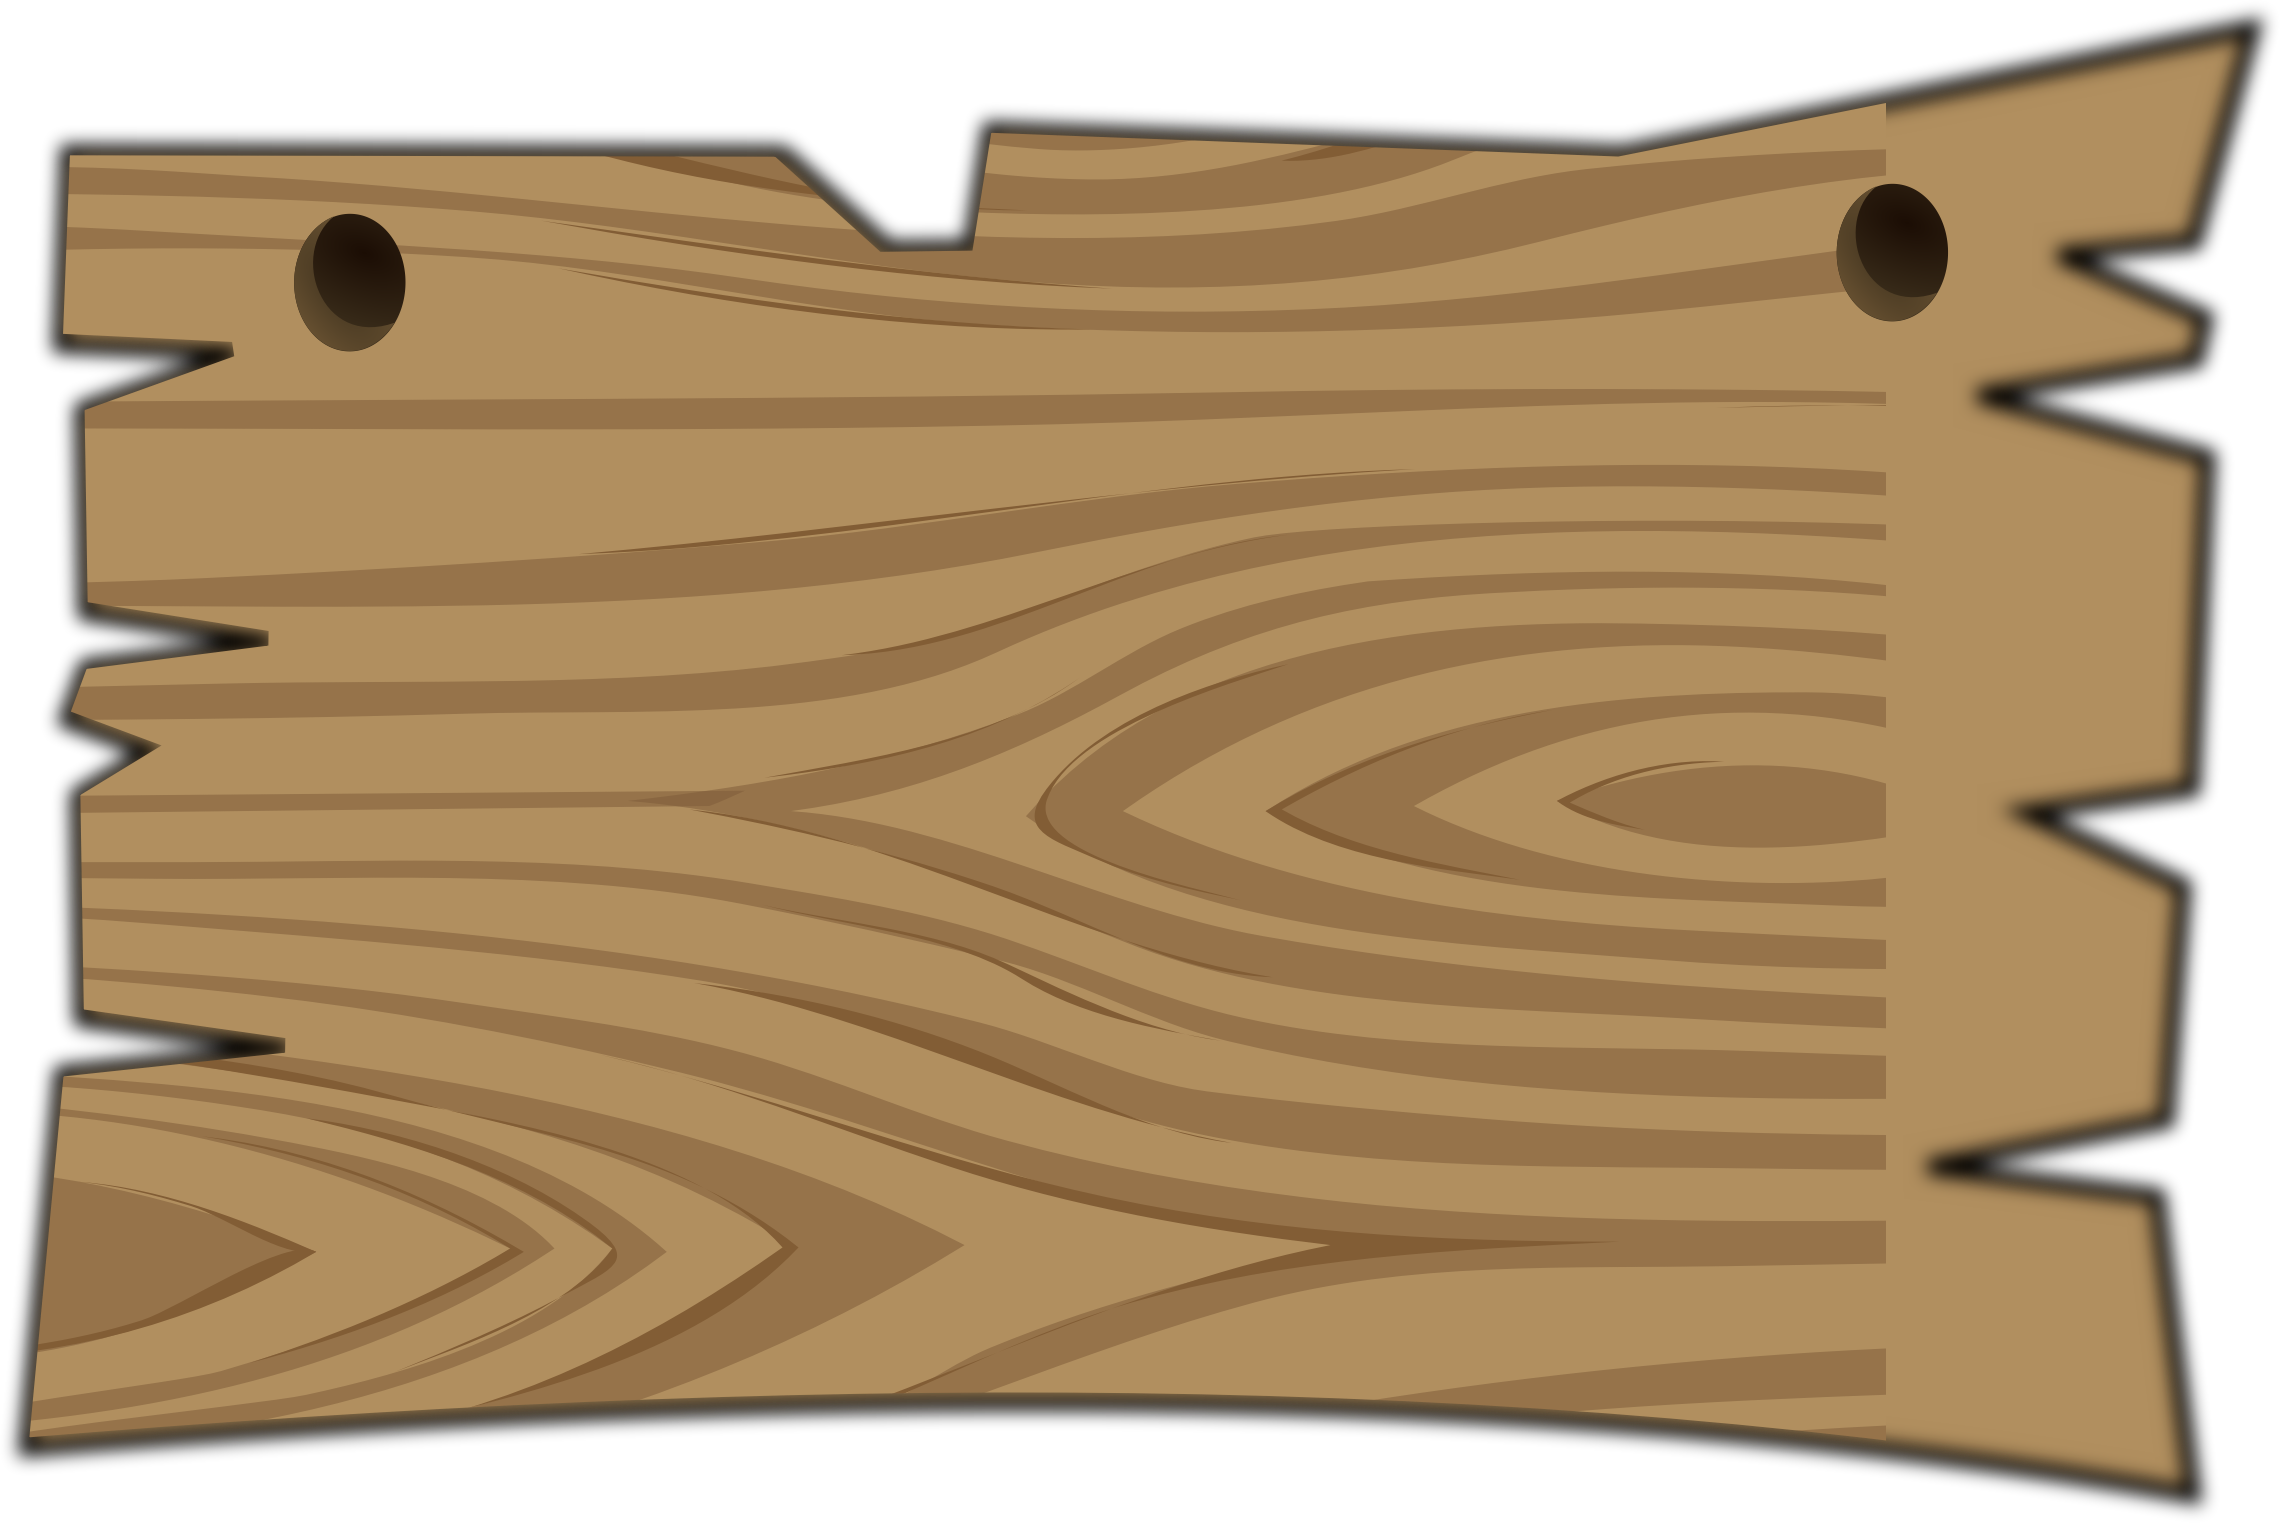 Wood plank sign png. Wooden clipart backgrounds wallpapers